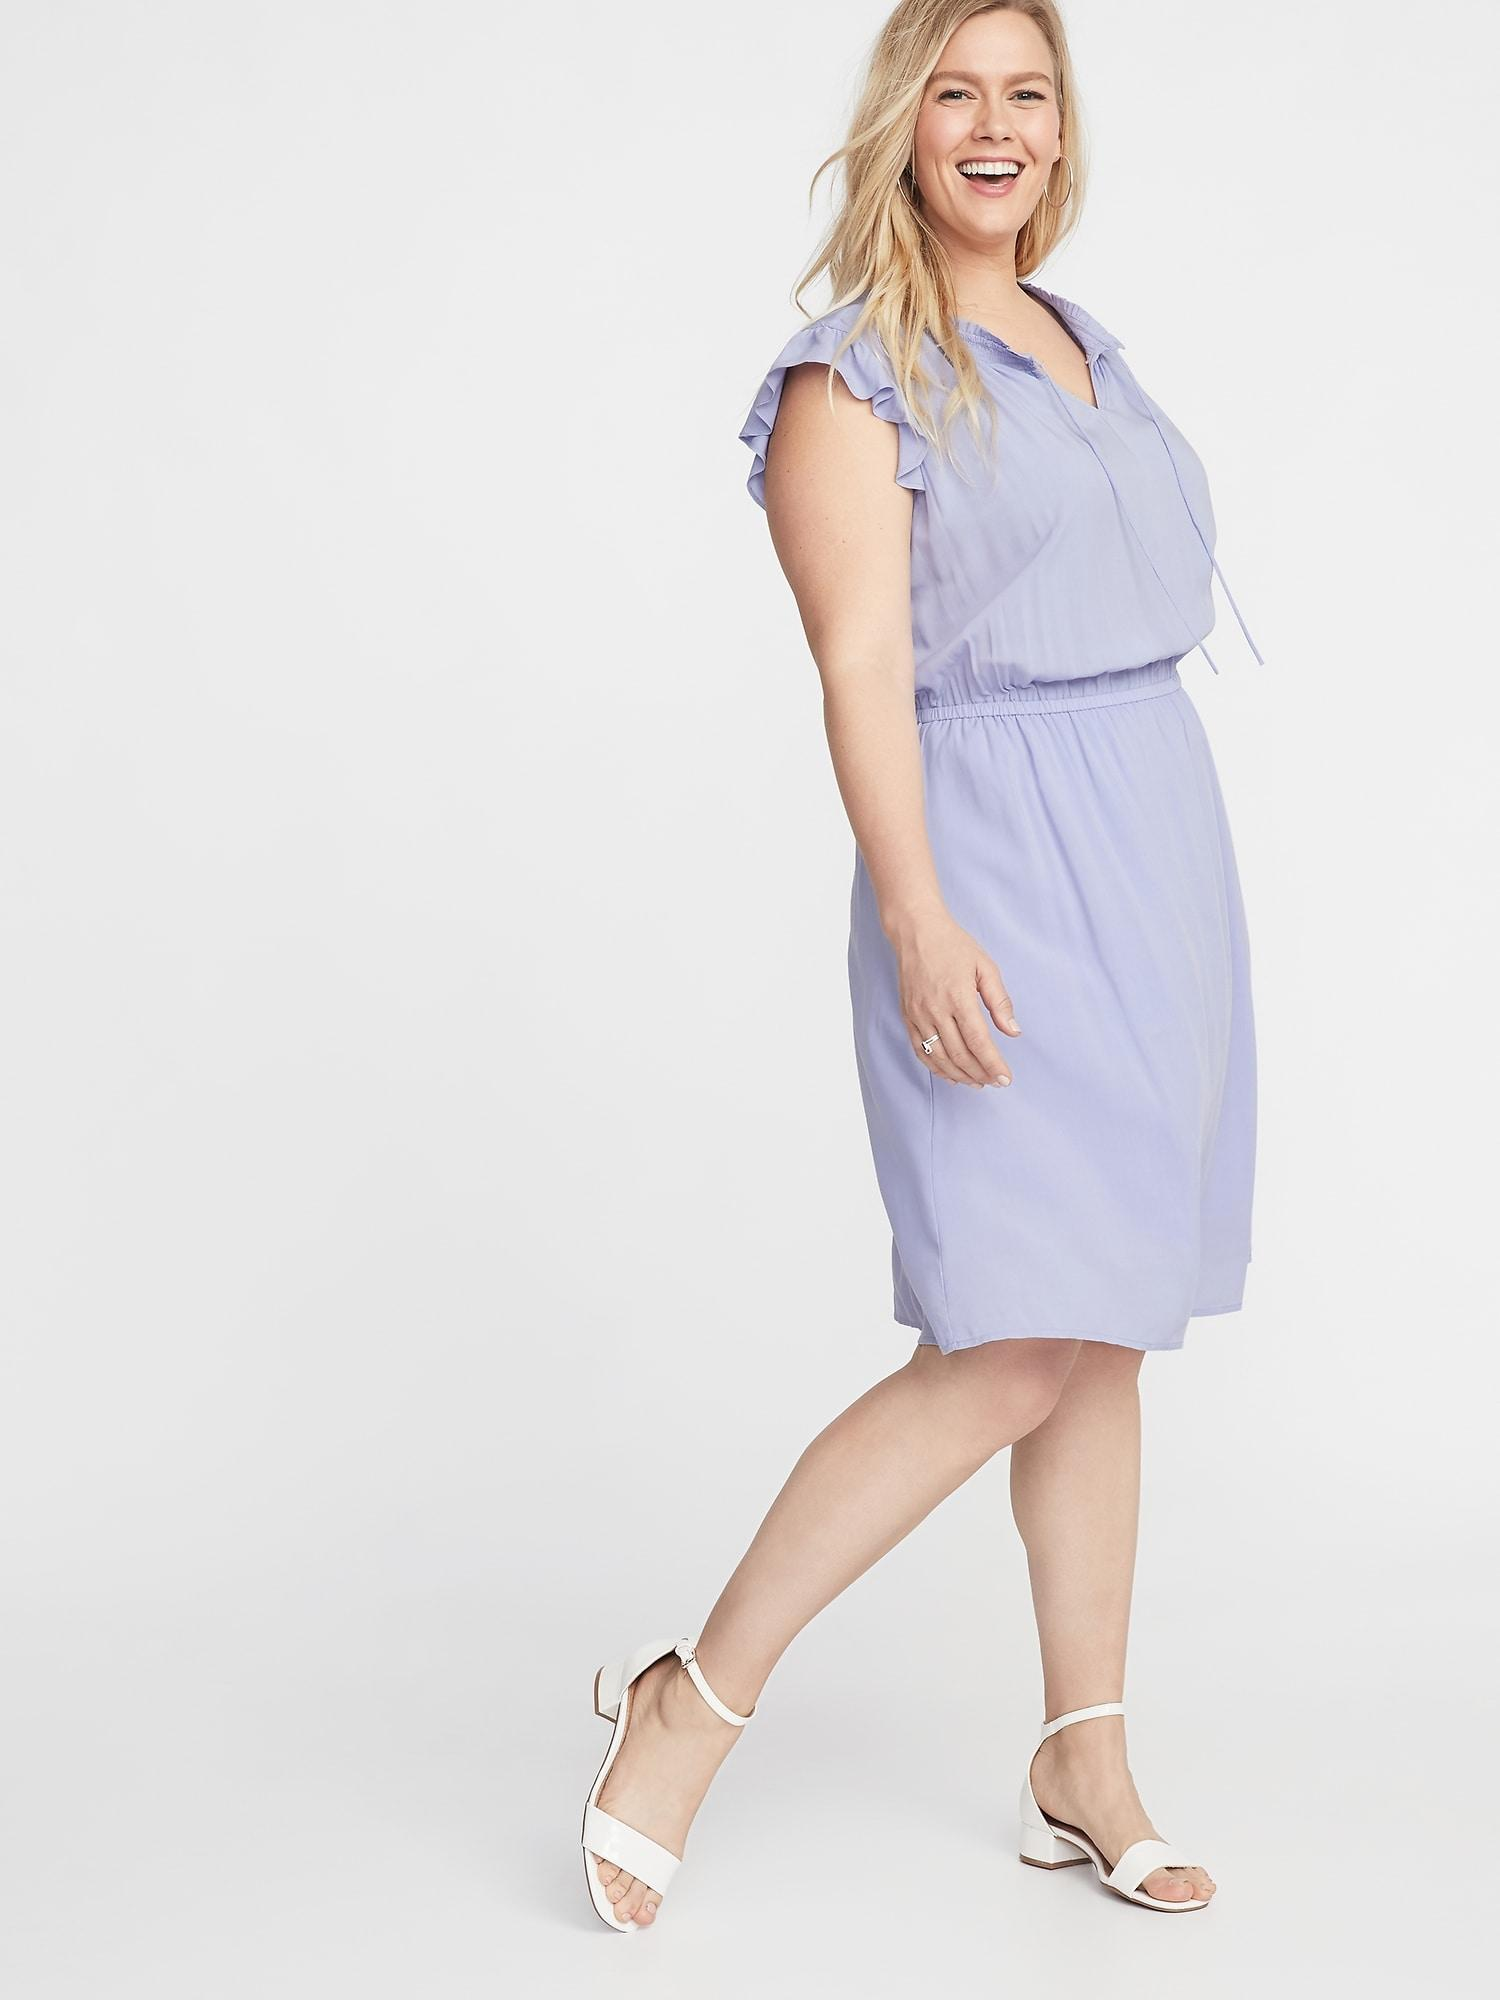 Plus Size Dresses Old Navy